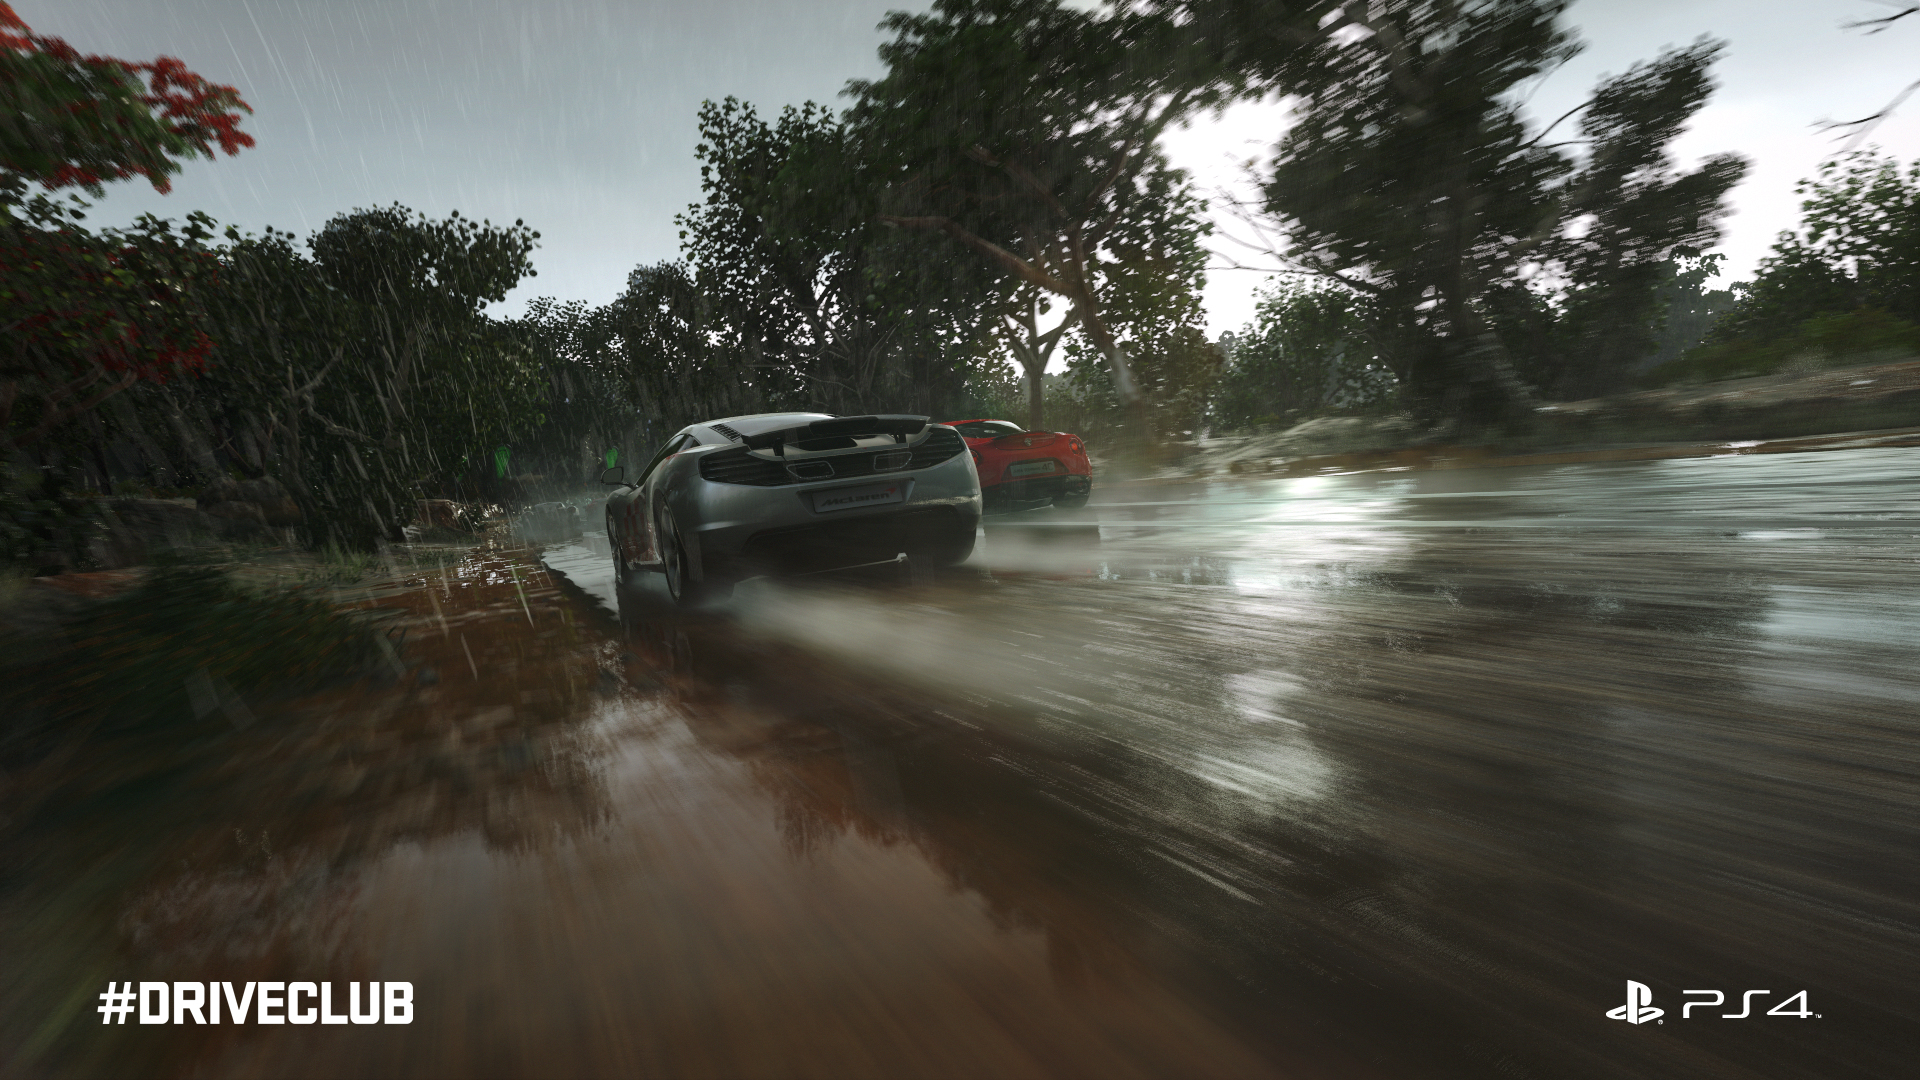 DriveClub Will Have Dynamic Weather